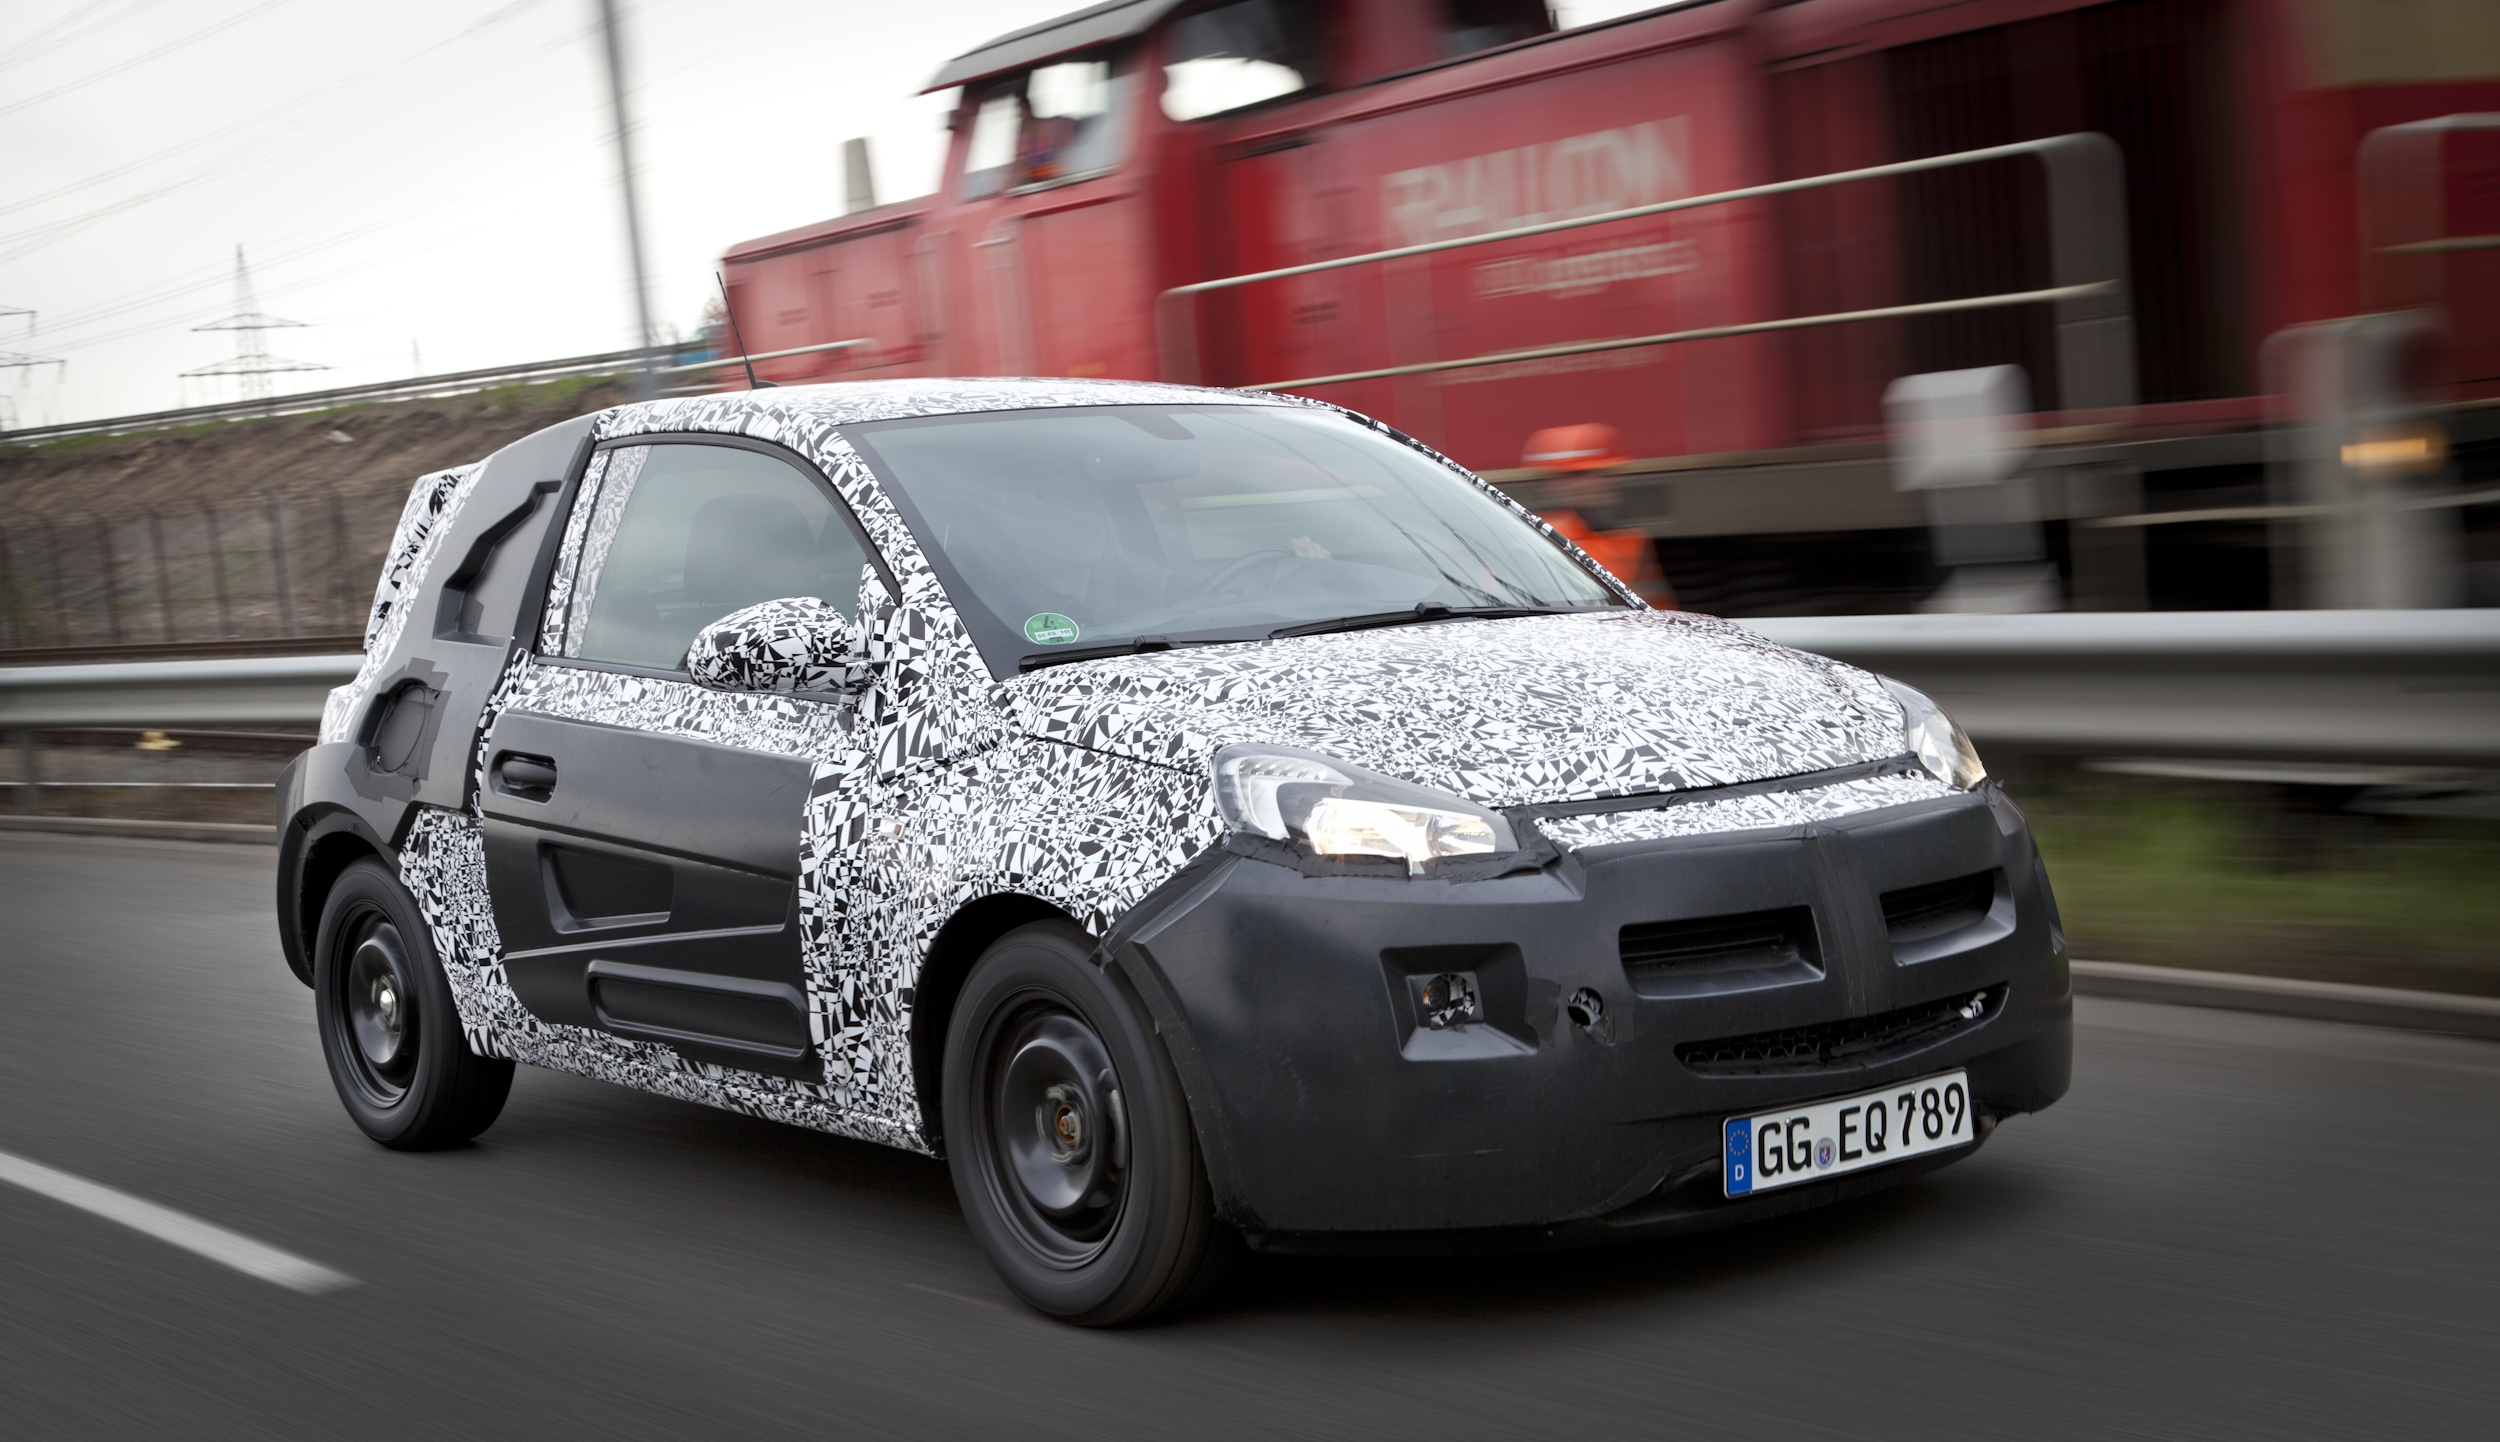 The new Vauxhall city car, the Adam